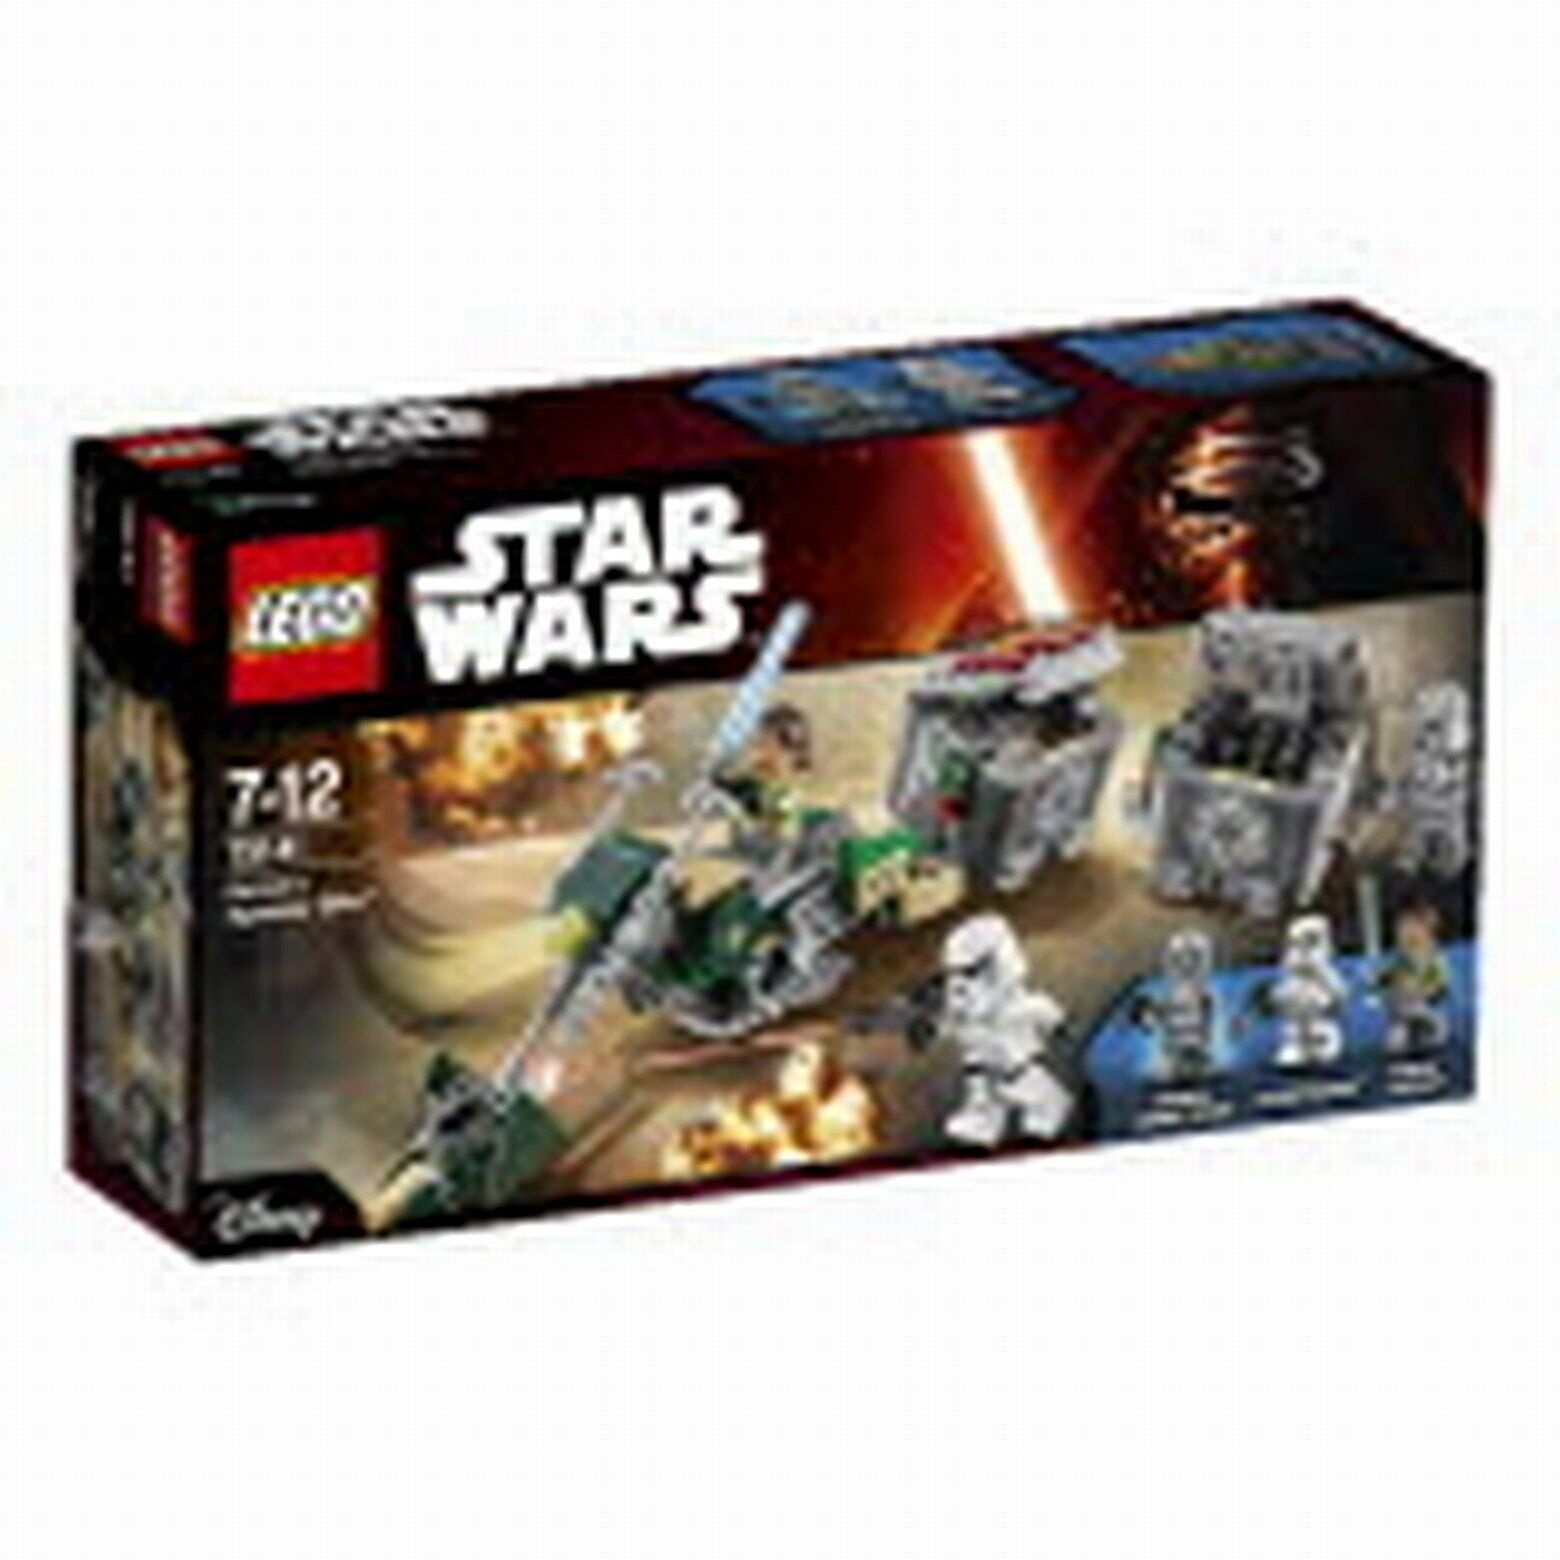 LEGO LEGO LEGO star wars 75141 Kanan 's speeder bike by Brand toys 766583